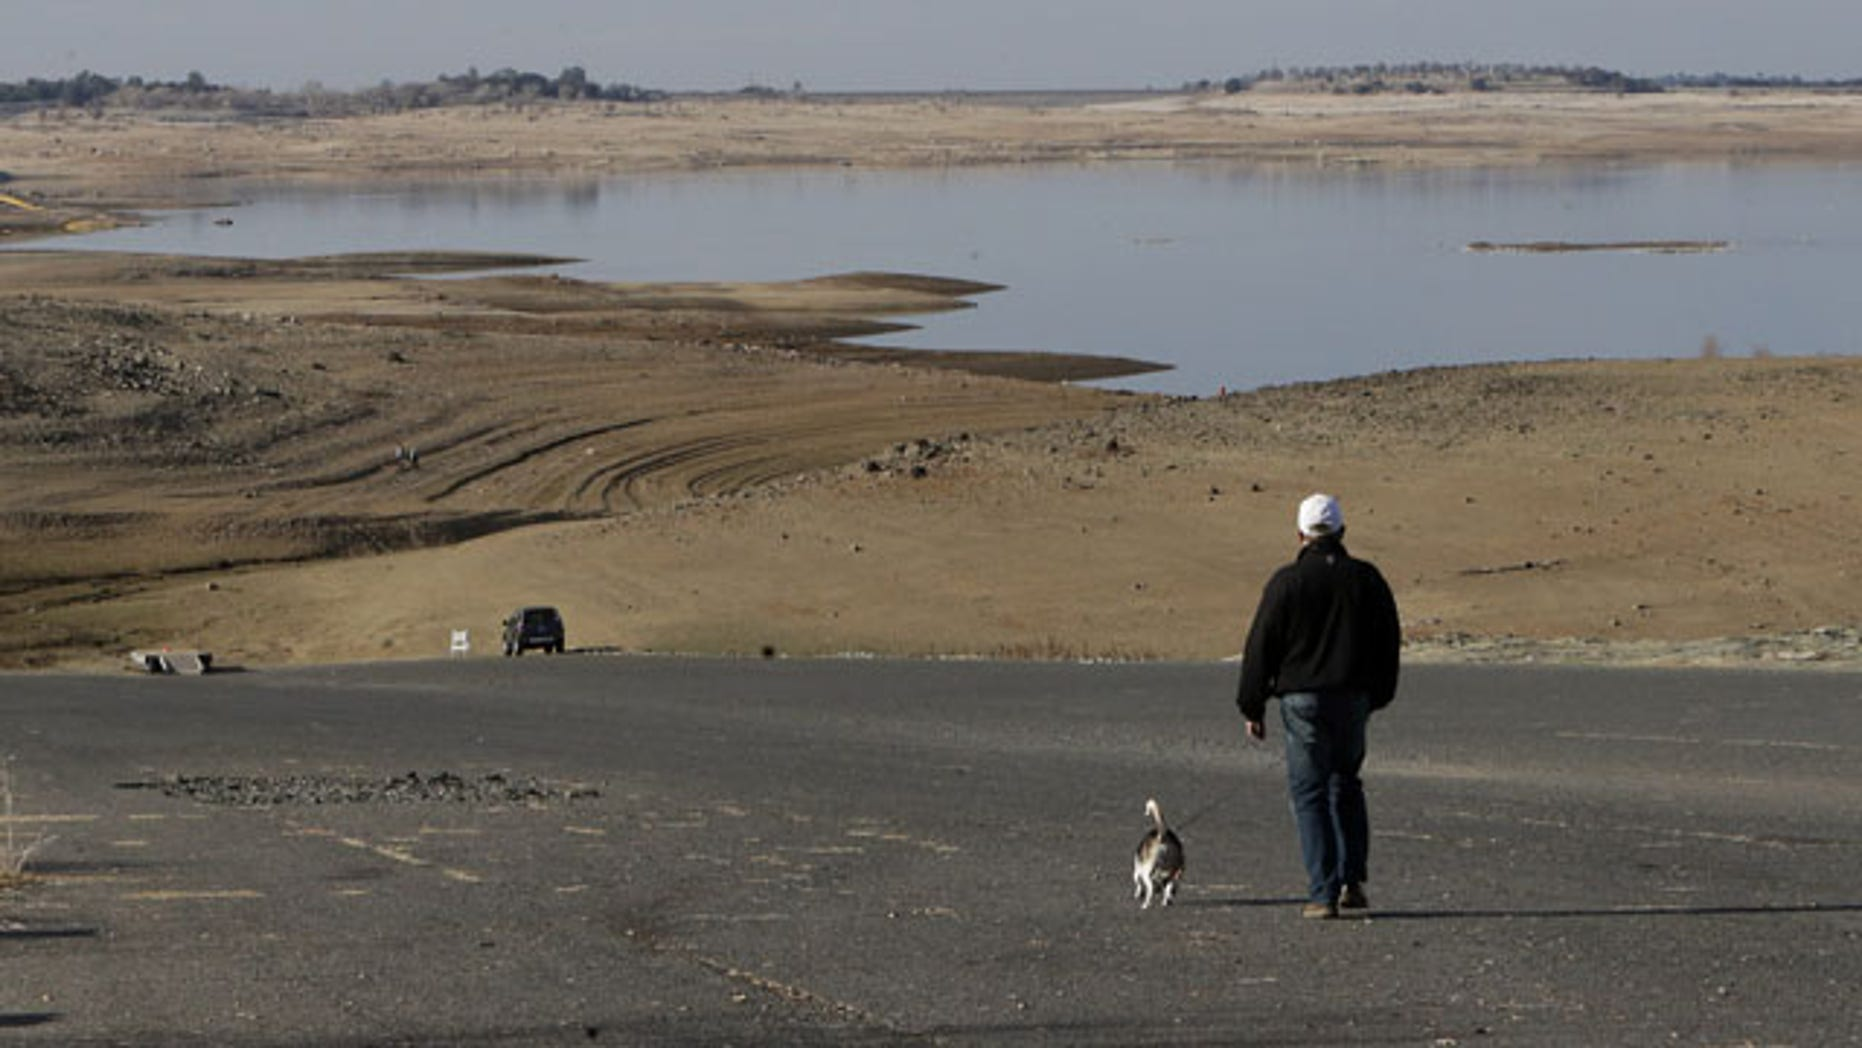 FILE -- In this Jan. 9, 2014 file photo a visitor to Folsom Lake, Calif., walks his dog down a boat ramp that is now several hundred yards away from the waters edge, in Folsom, Calif. Gov. Jerry Brown was governor the last time California had a drought of epic proportions, in 1975-76 and now is pushing a controversial $25 billion plan to build twin tunnels to ship water from the Sacramento-San Joaquin River Delta to farmland and cities further south. (AP Photo/Rich Pedroncelli,file)